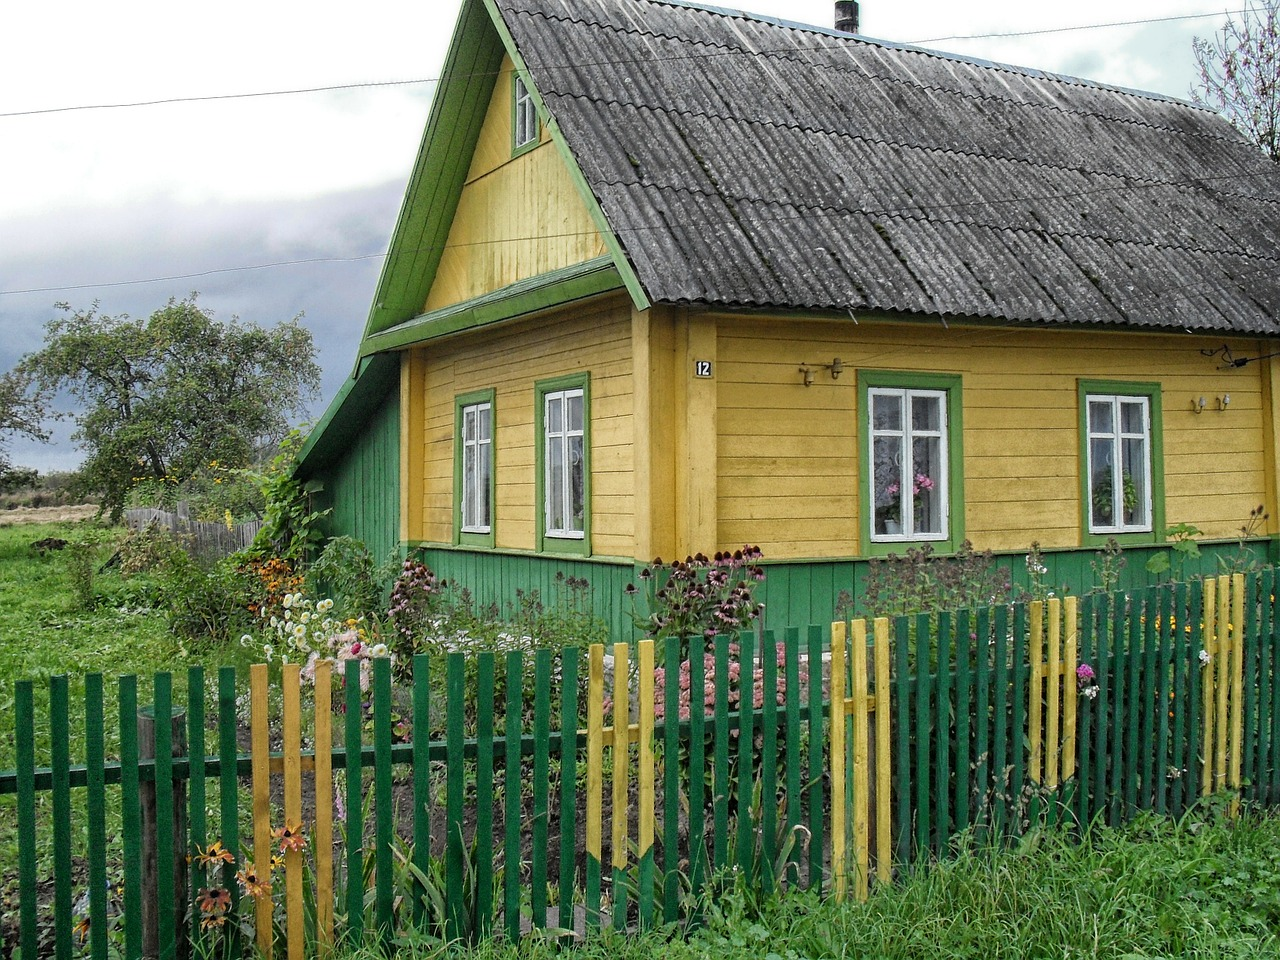 belarus,house,home,architecture,nature,outside,rural,country,countryside,free pictures, free photos, free images, royalty free, free illustrations, public domain